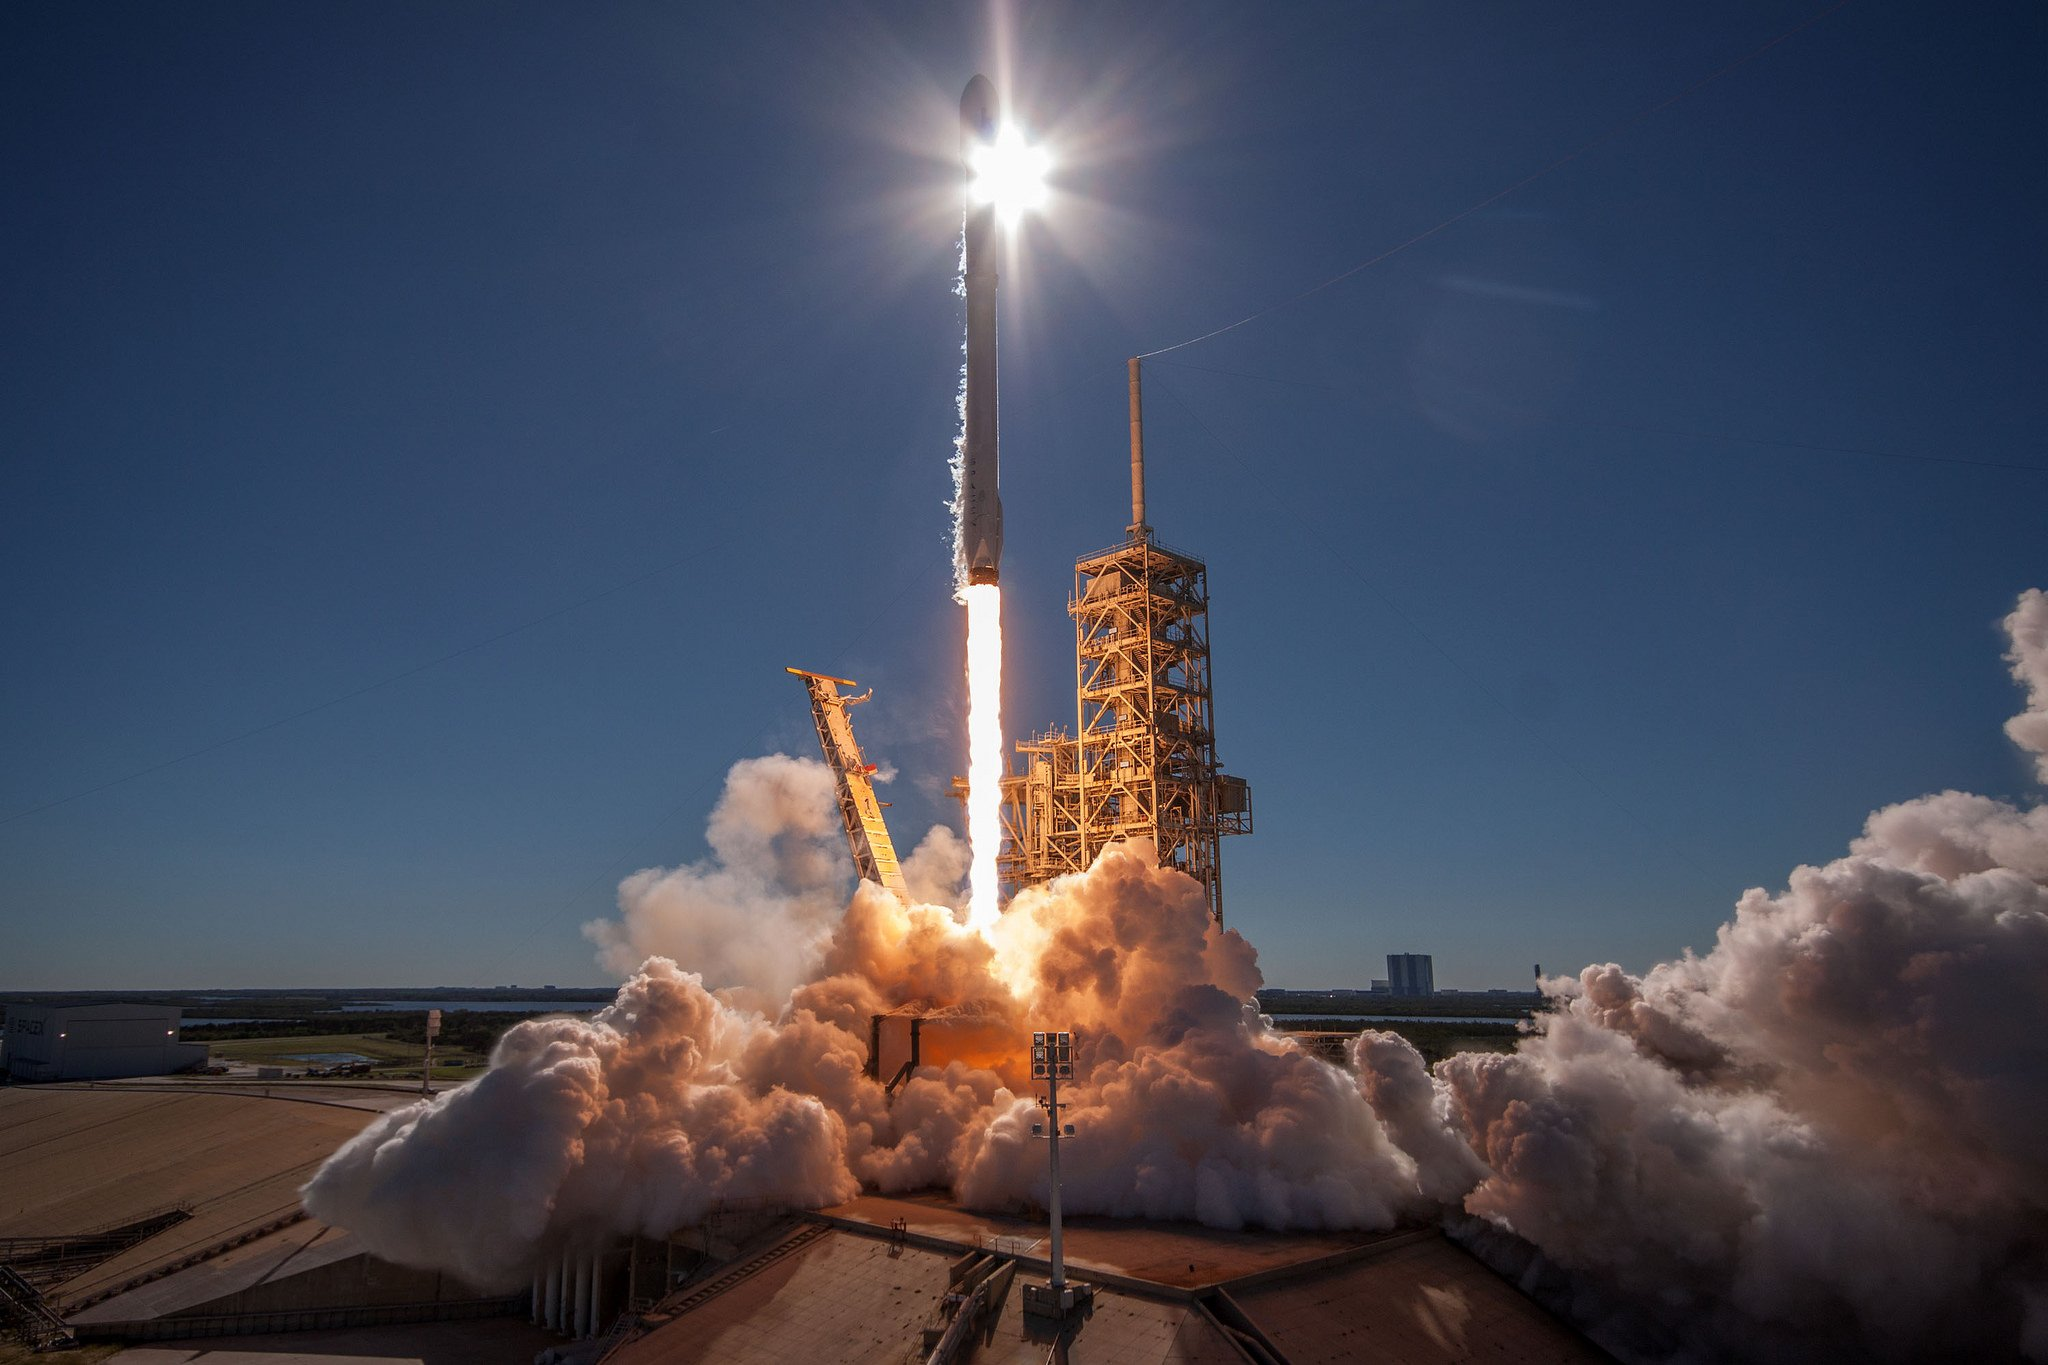 spacex launches rocket - HD2048×1365